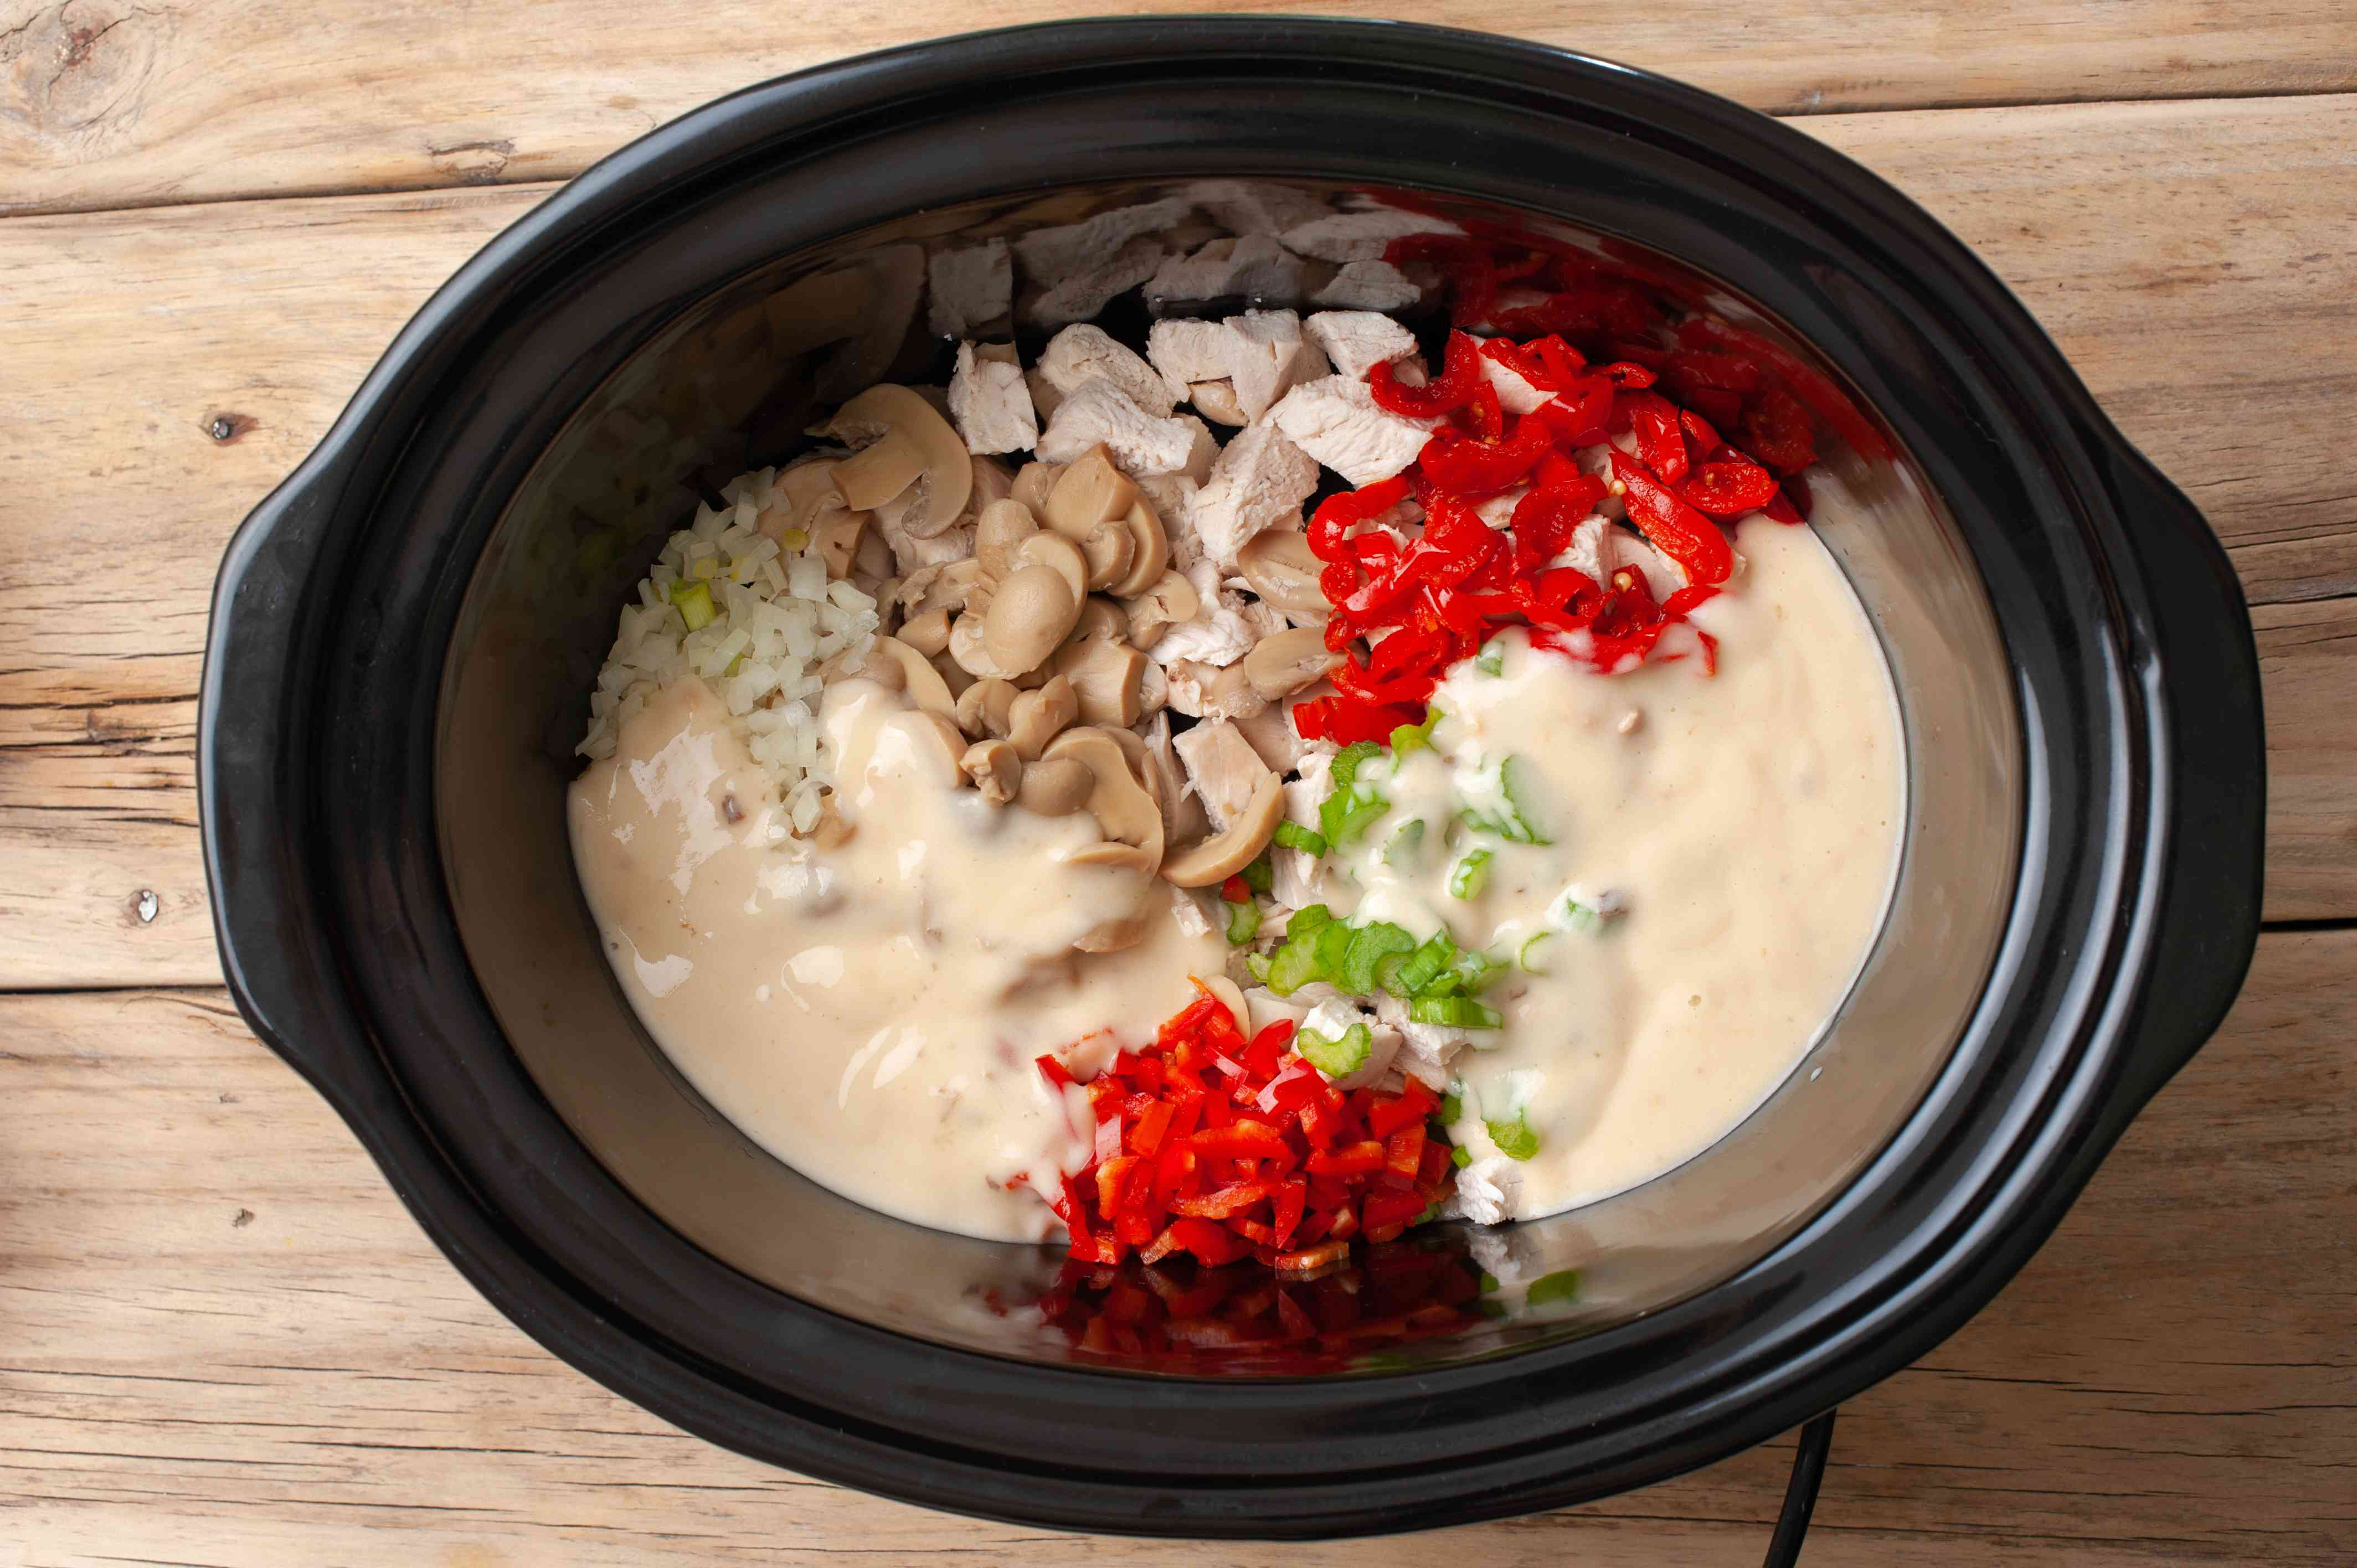 Combine chicken and bell pepper